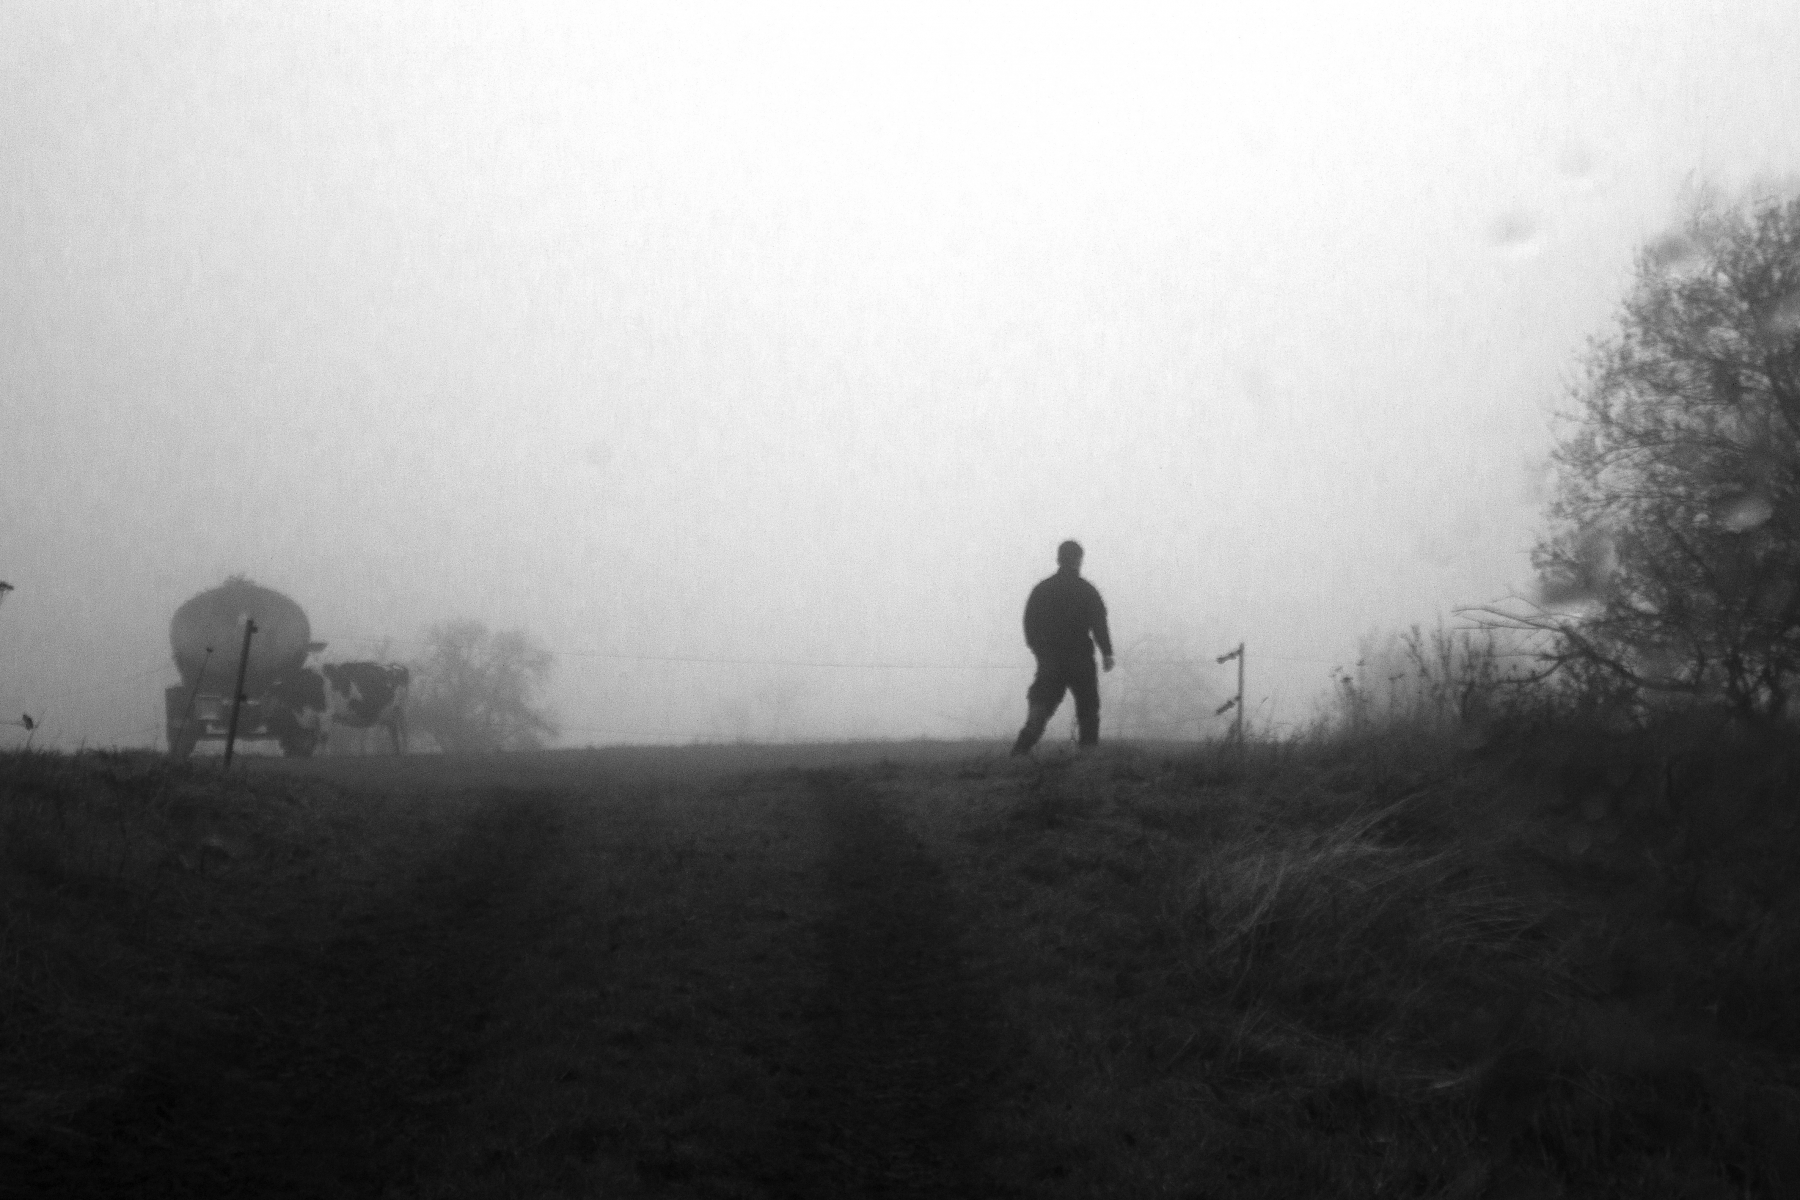 A man standing on a field in the fog